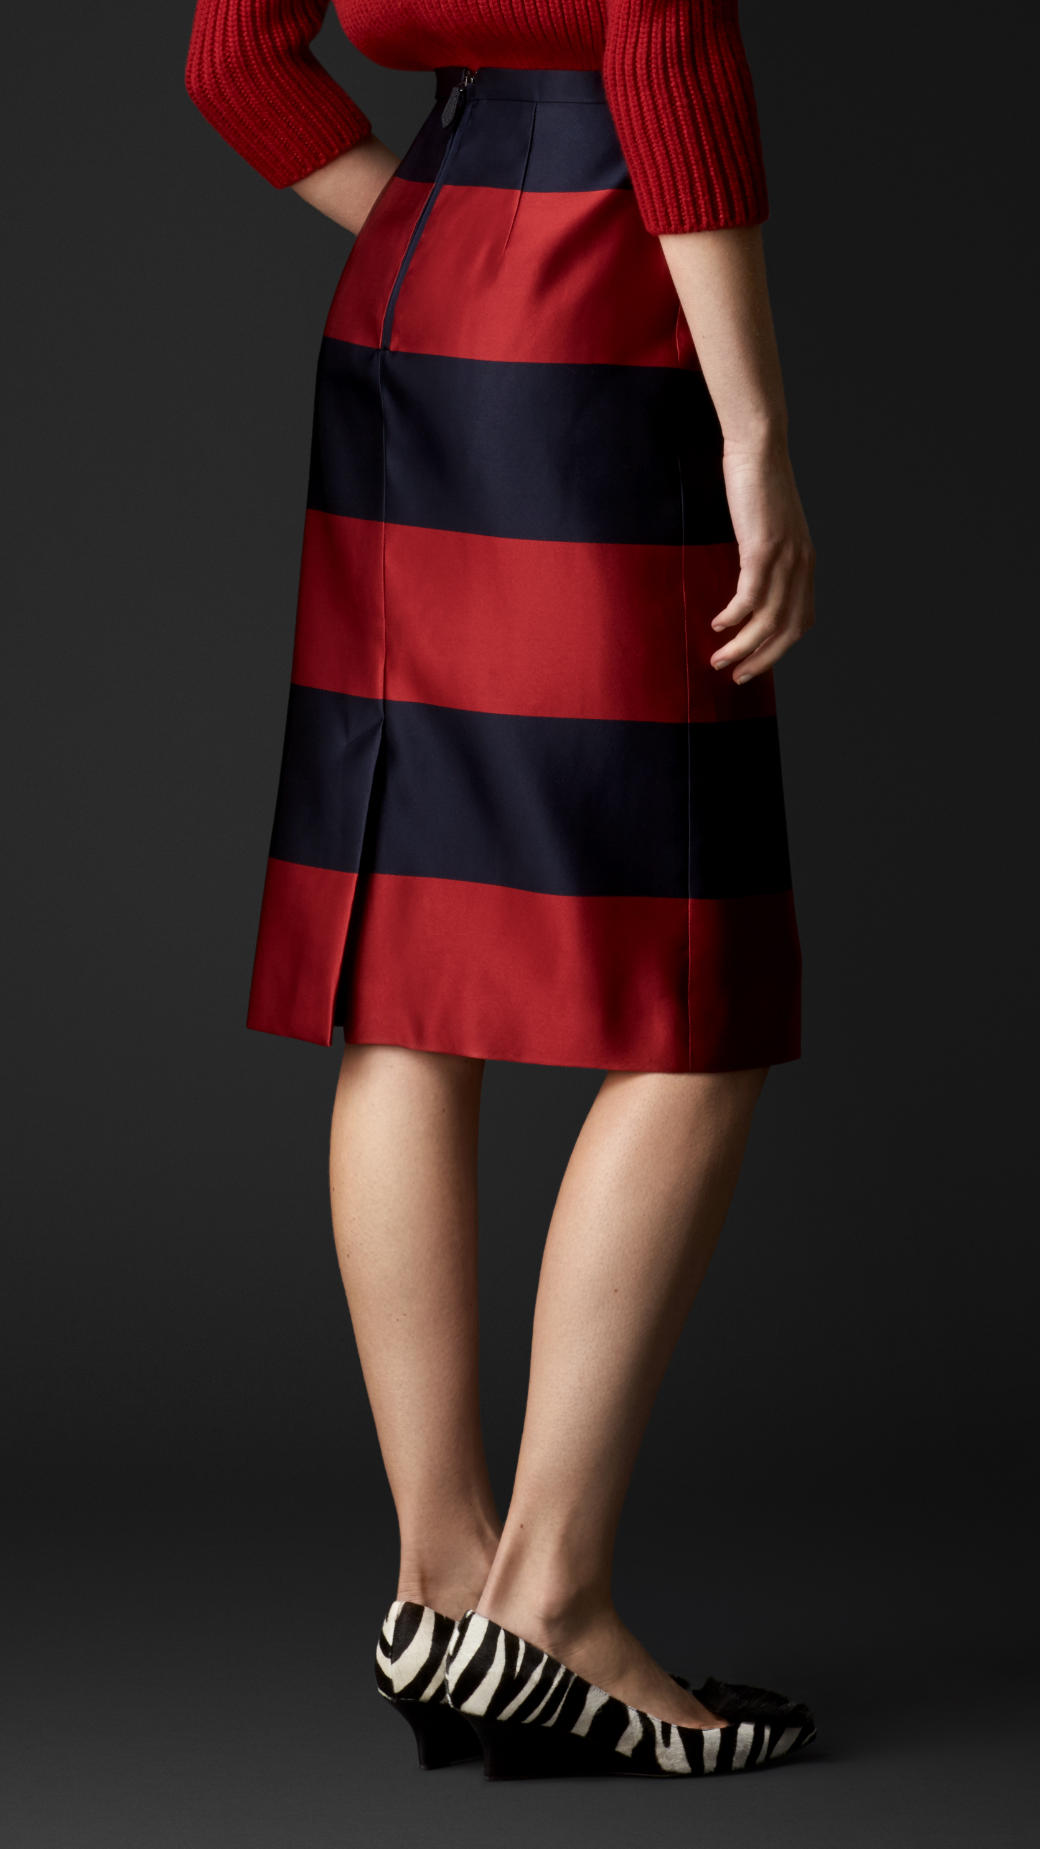 33c7c4c2e397 Burberry Duchess Silk Satin Pencil Skirt in Red - Lyst